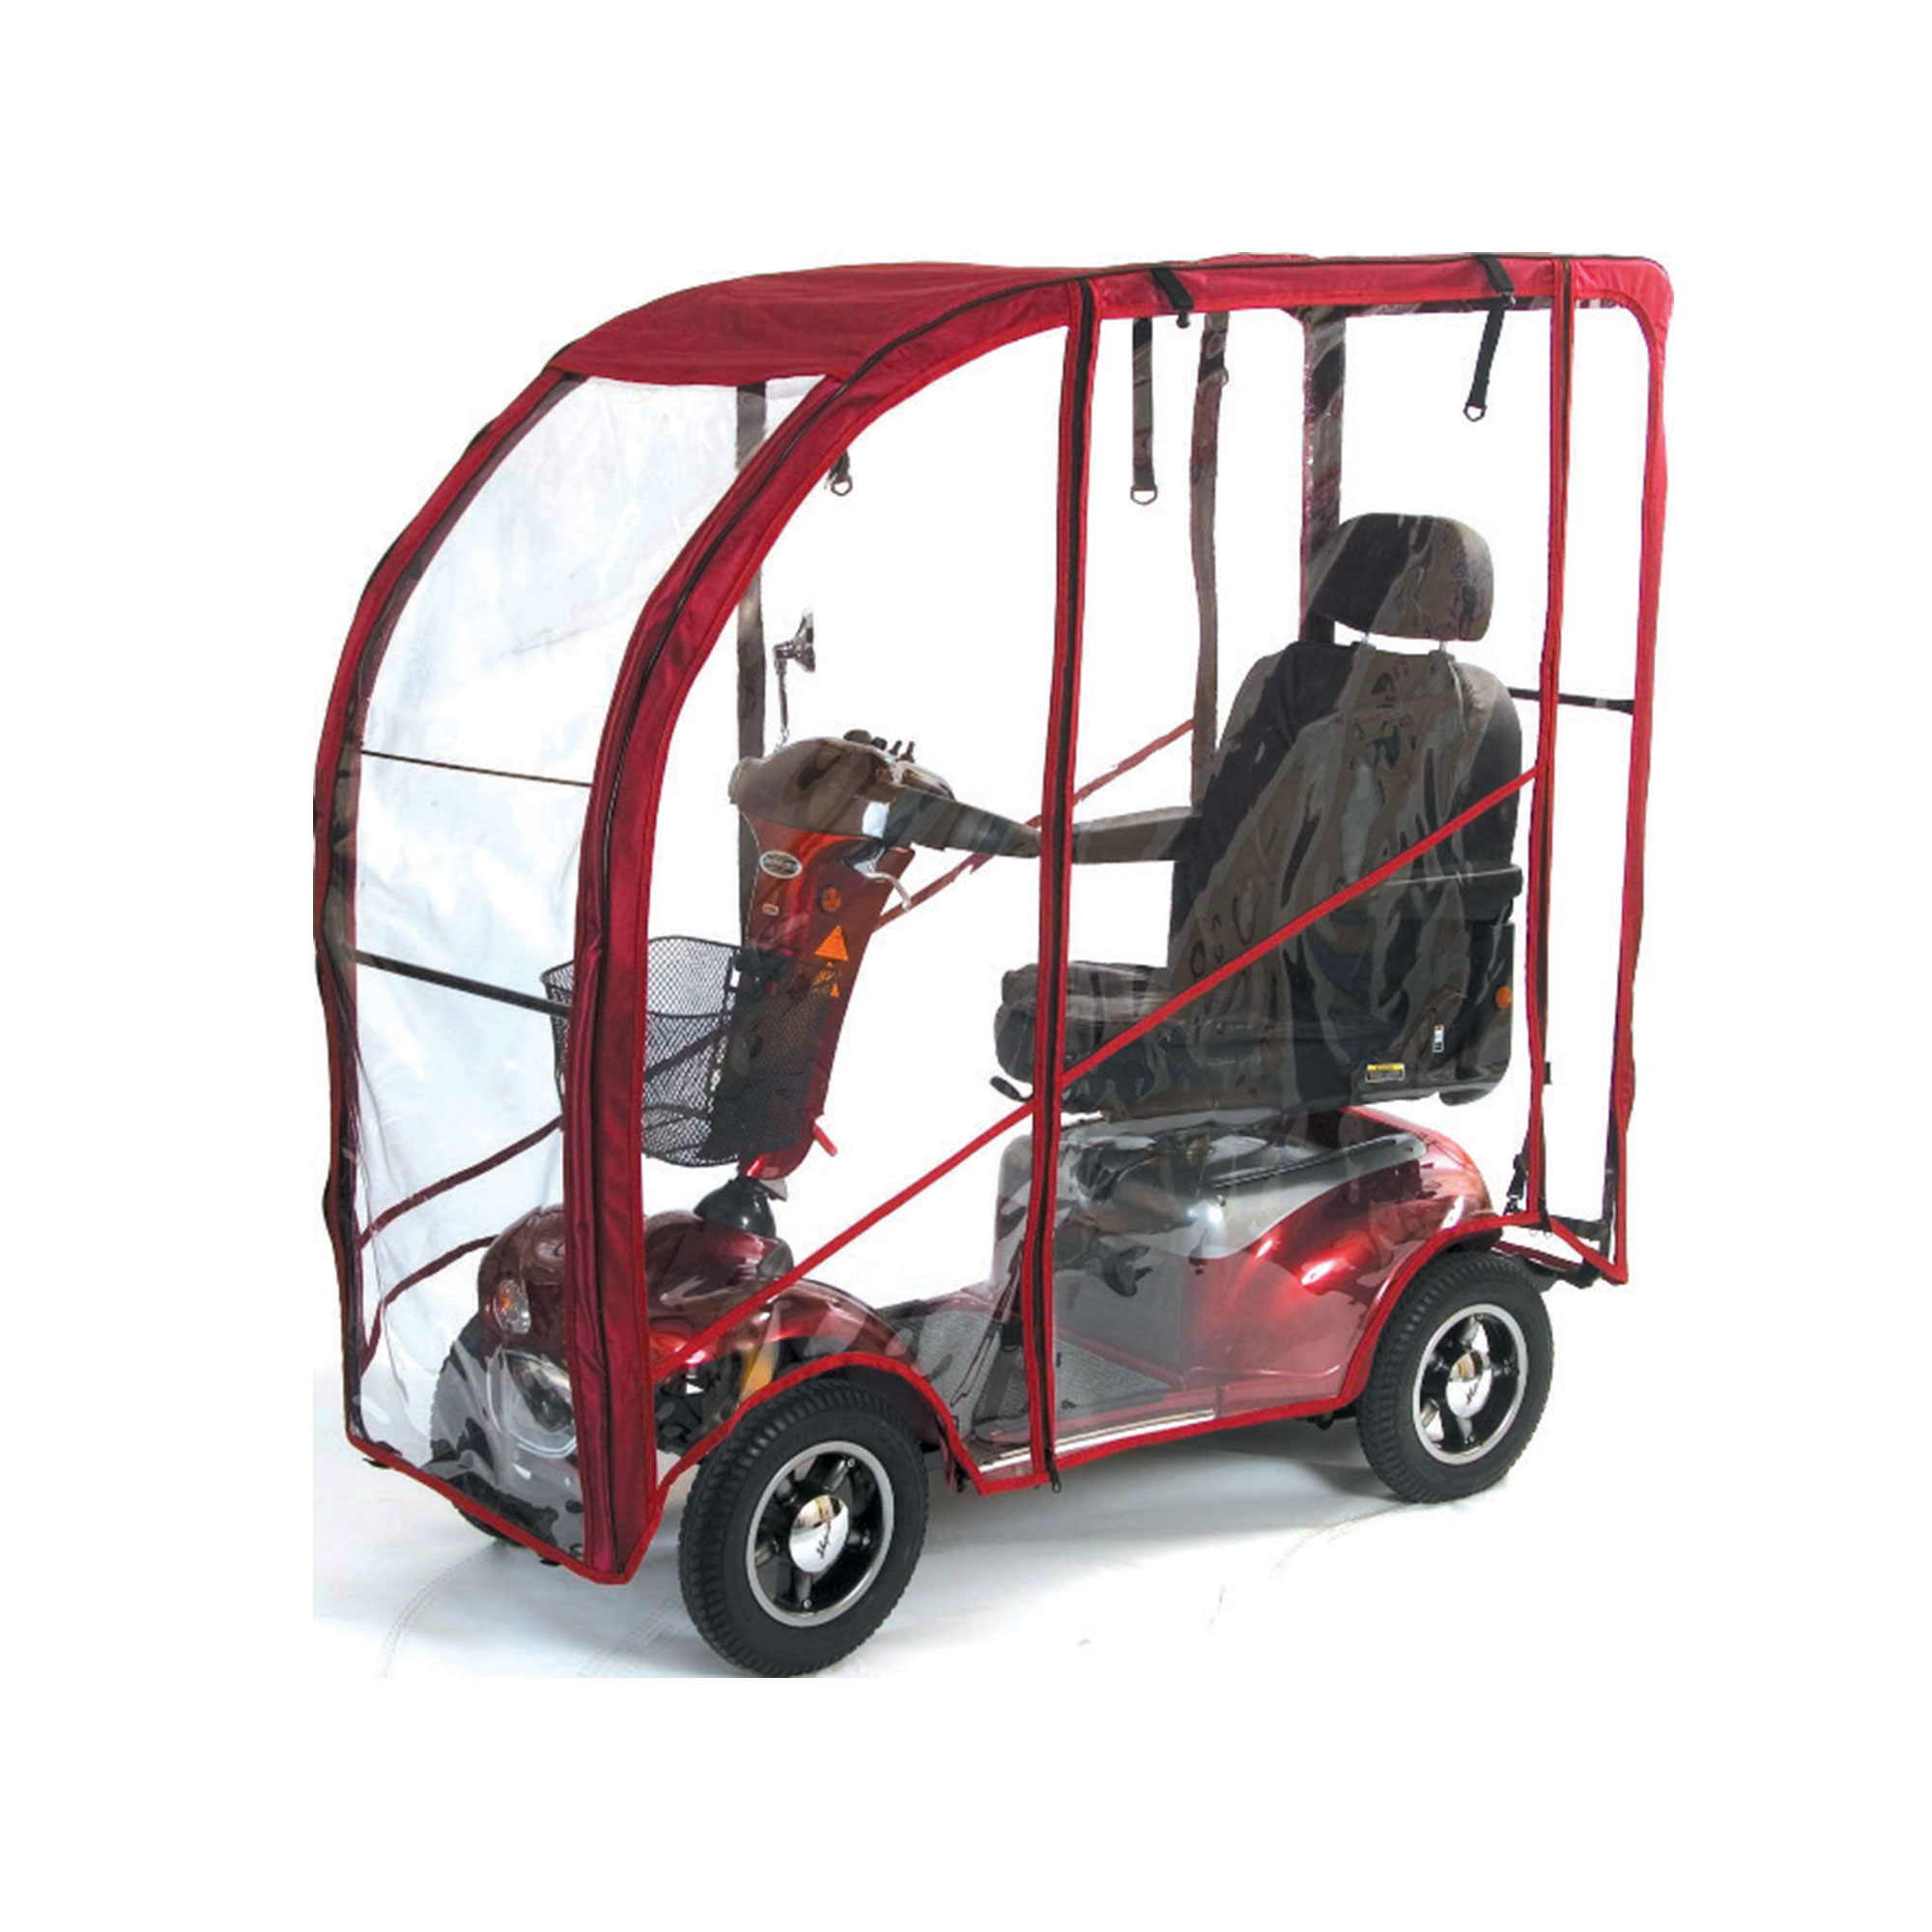 Ac20 Ac23 Ac92 Scooter Canopy Roma Medical